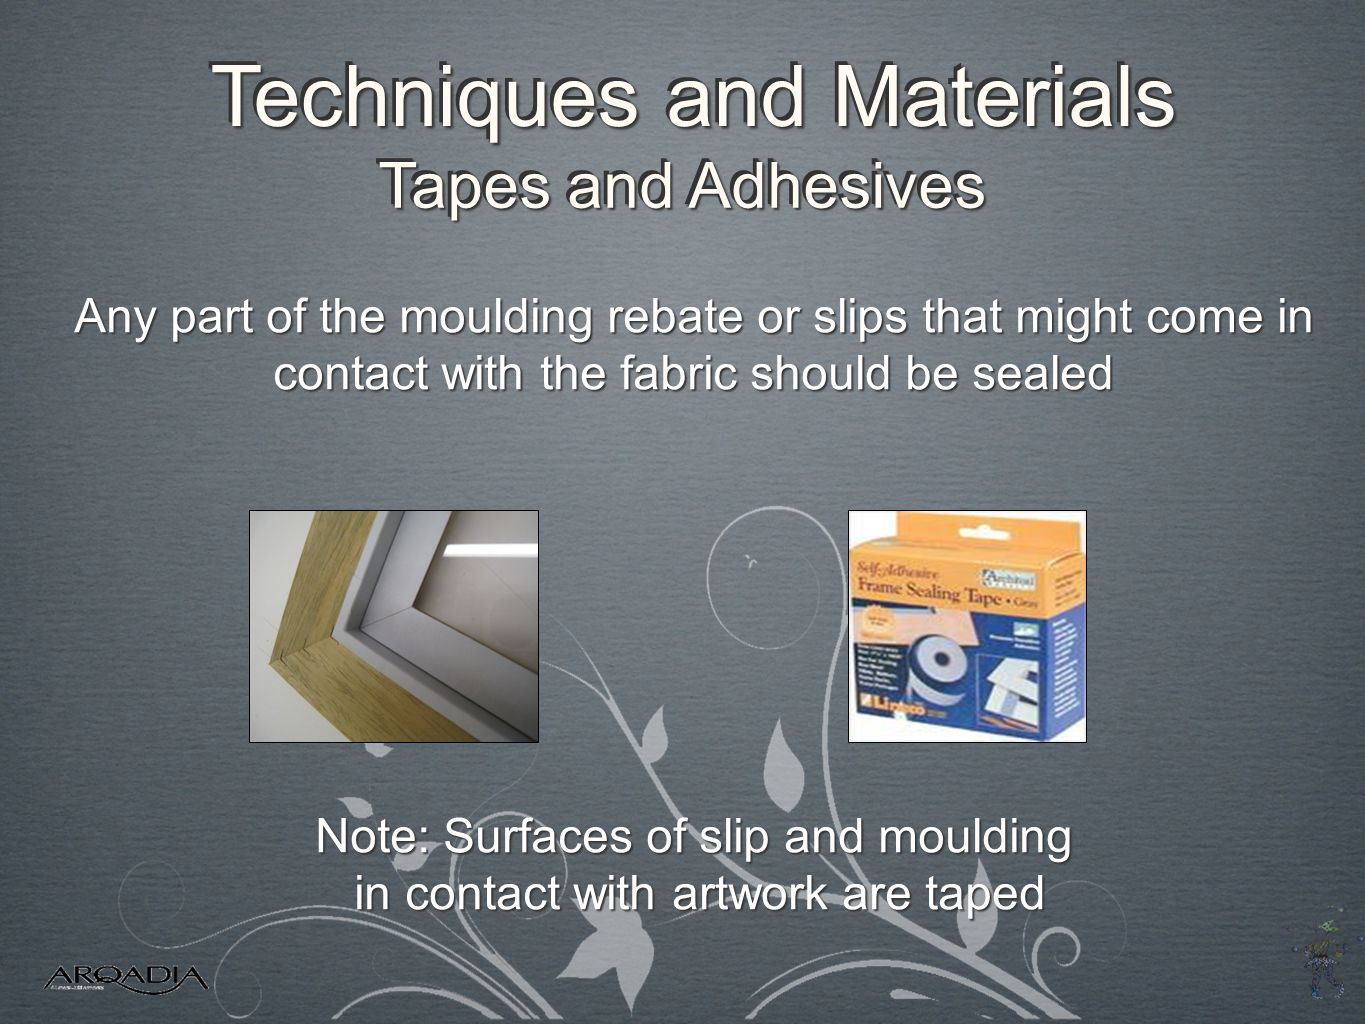 Techniques and Materials Tapes and Adhesives Note: Surfaces of slip and moulding in contact with artwork are taped in contact with artwork are taped A